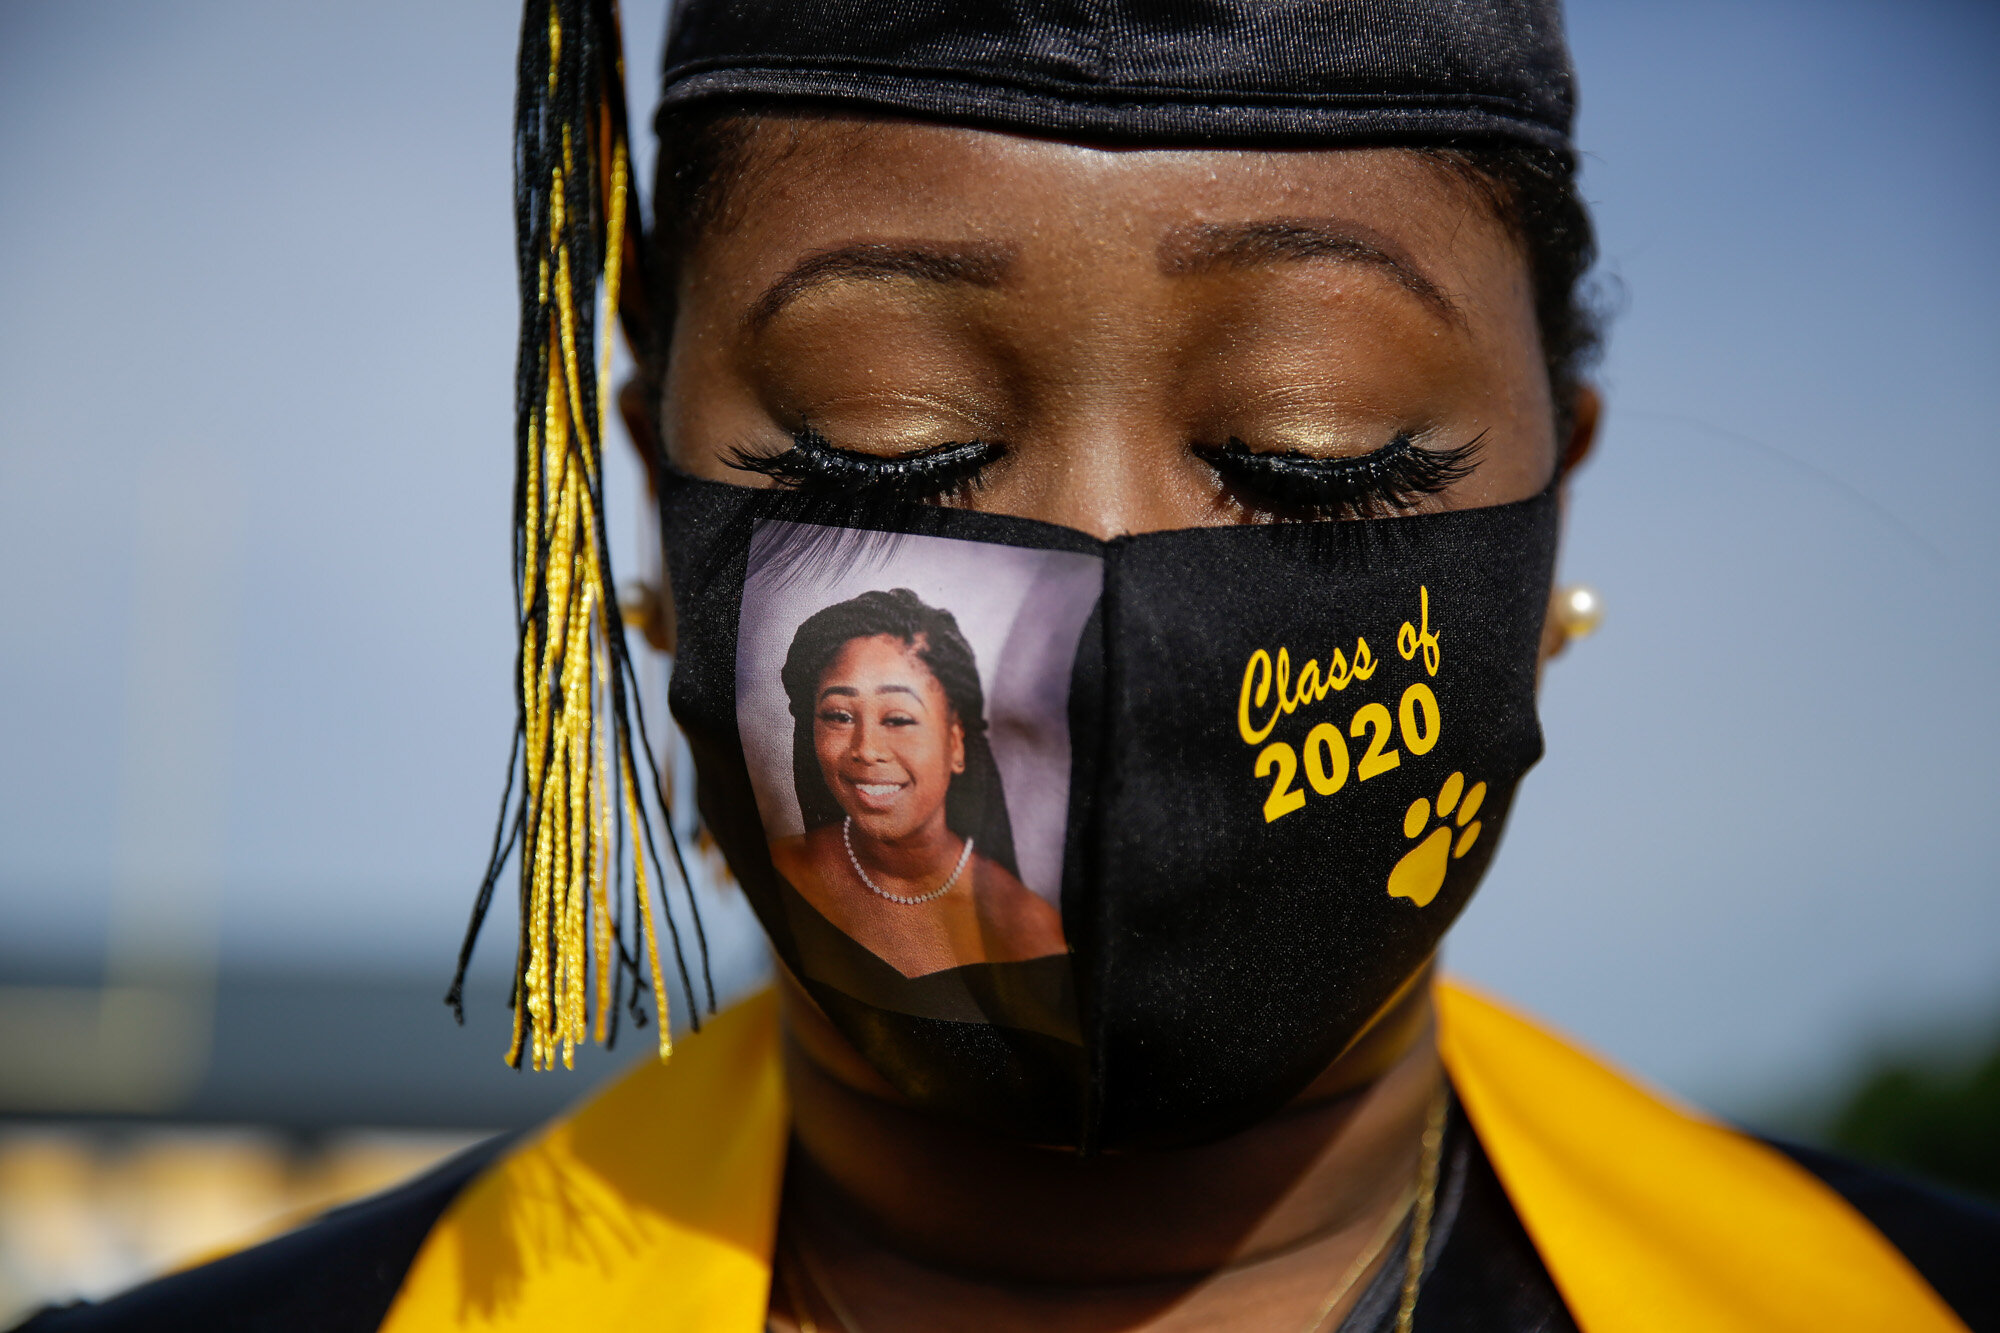 """Yasmine Protho, 18, wears a photo of herself and """"Class of 2020"""" on her protective mask amid the COVID-19 virus outbreak as she graduates with only nine other classmates and limited family attending at Chattahoochee County High School in Cusseta, Ga., on May 15, 2020. (AP Photo/Brynn Anderson)"""